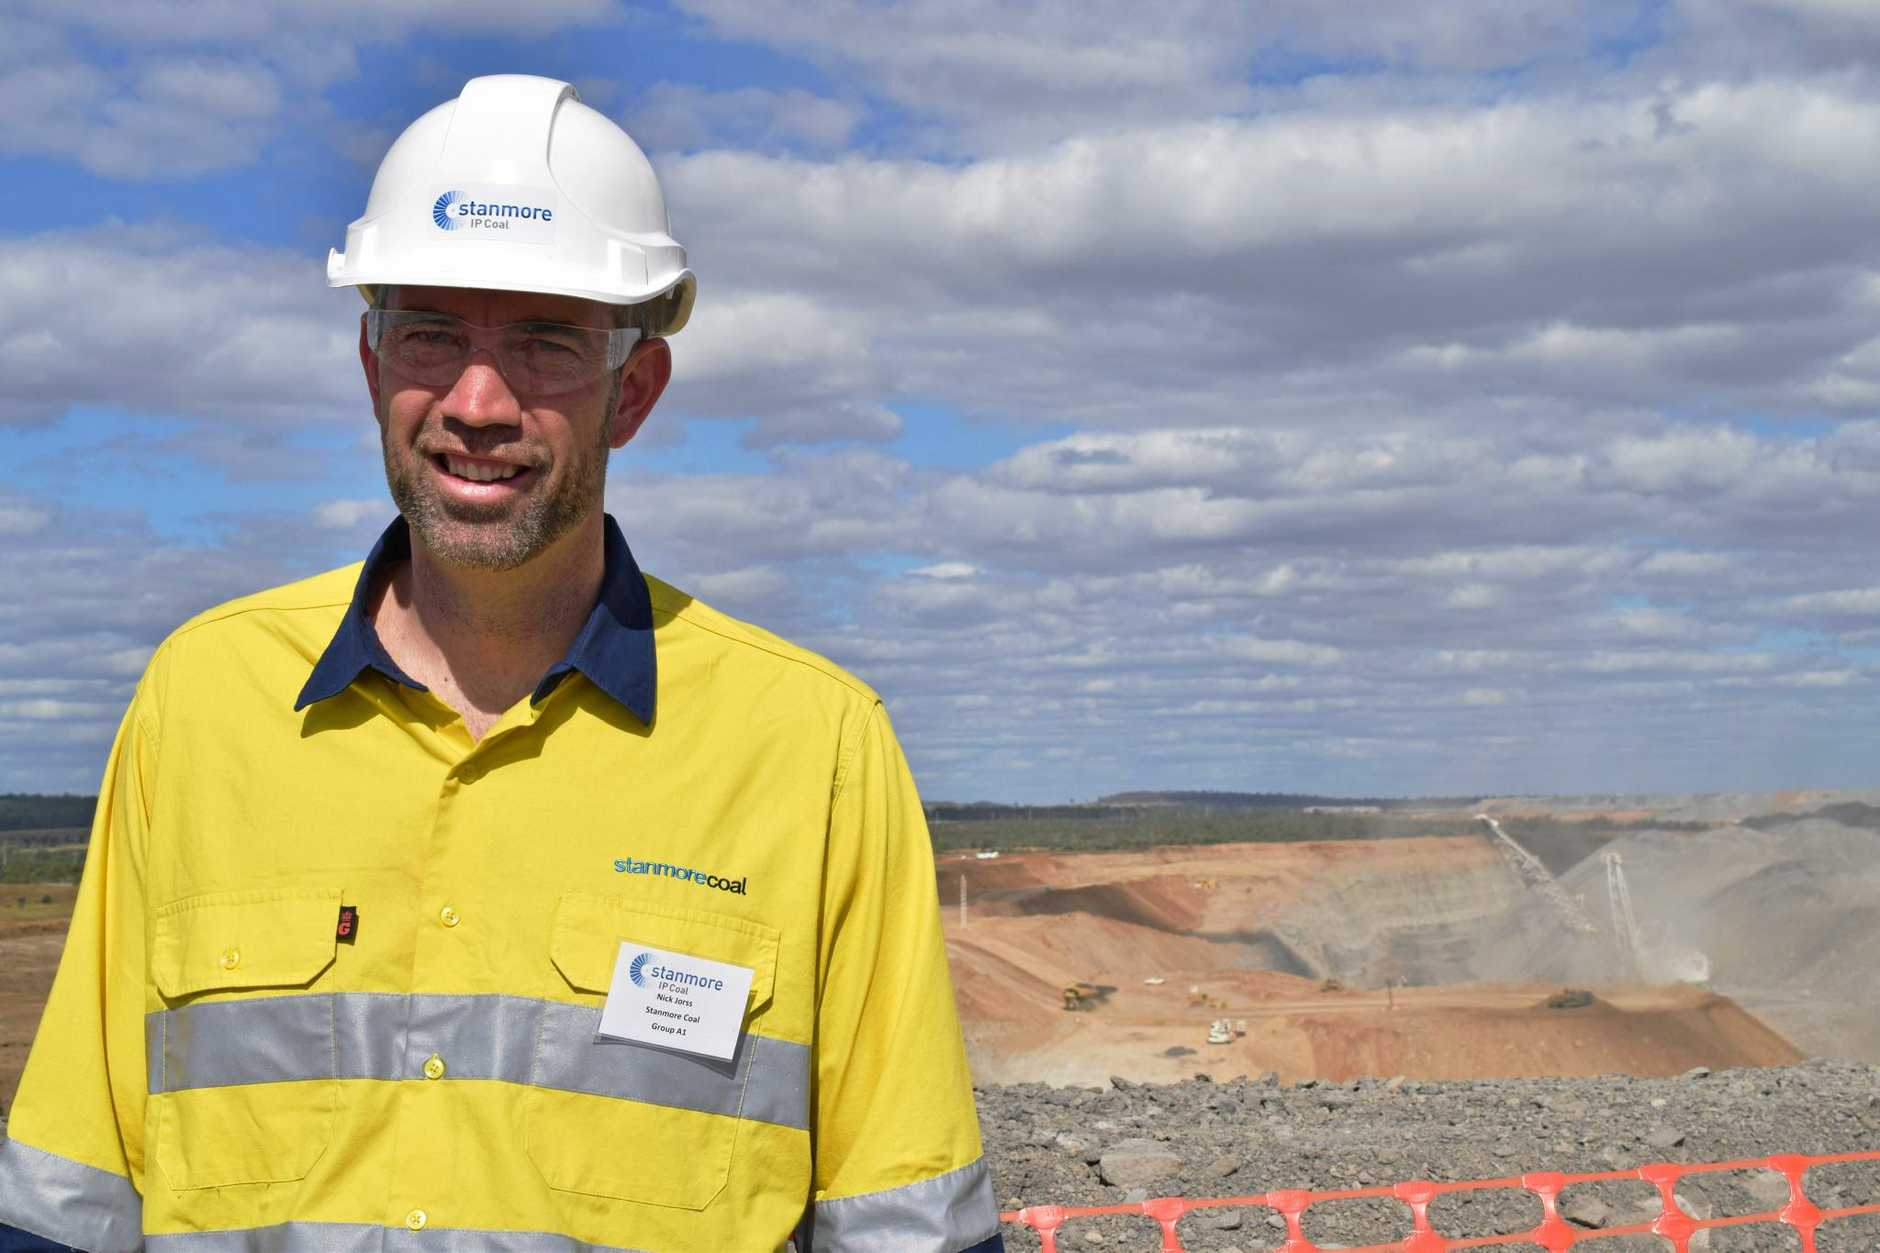 Stamore Coal's managing director Nick Jorss at the Isaac Plains coal mine yesterday. Photo: Emily Smith